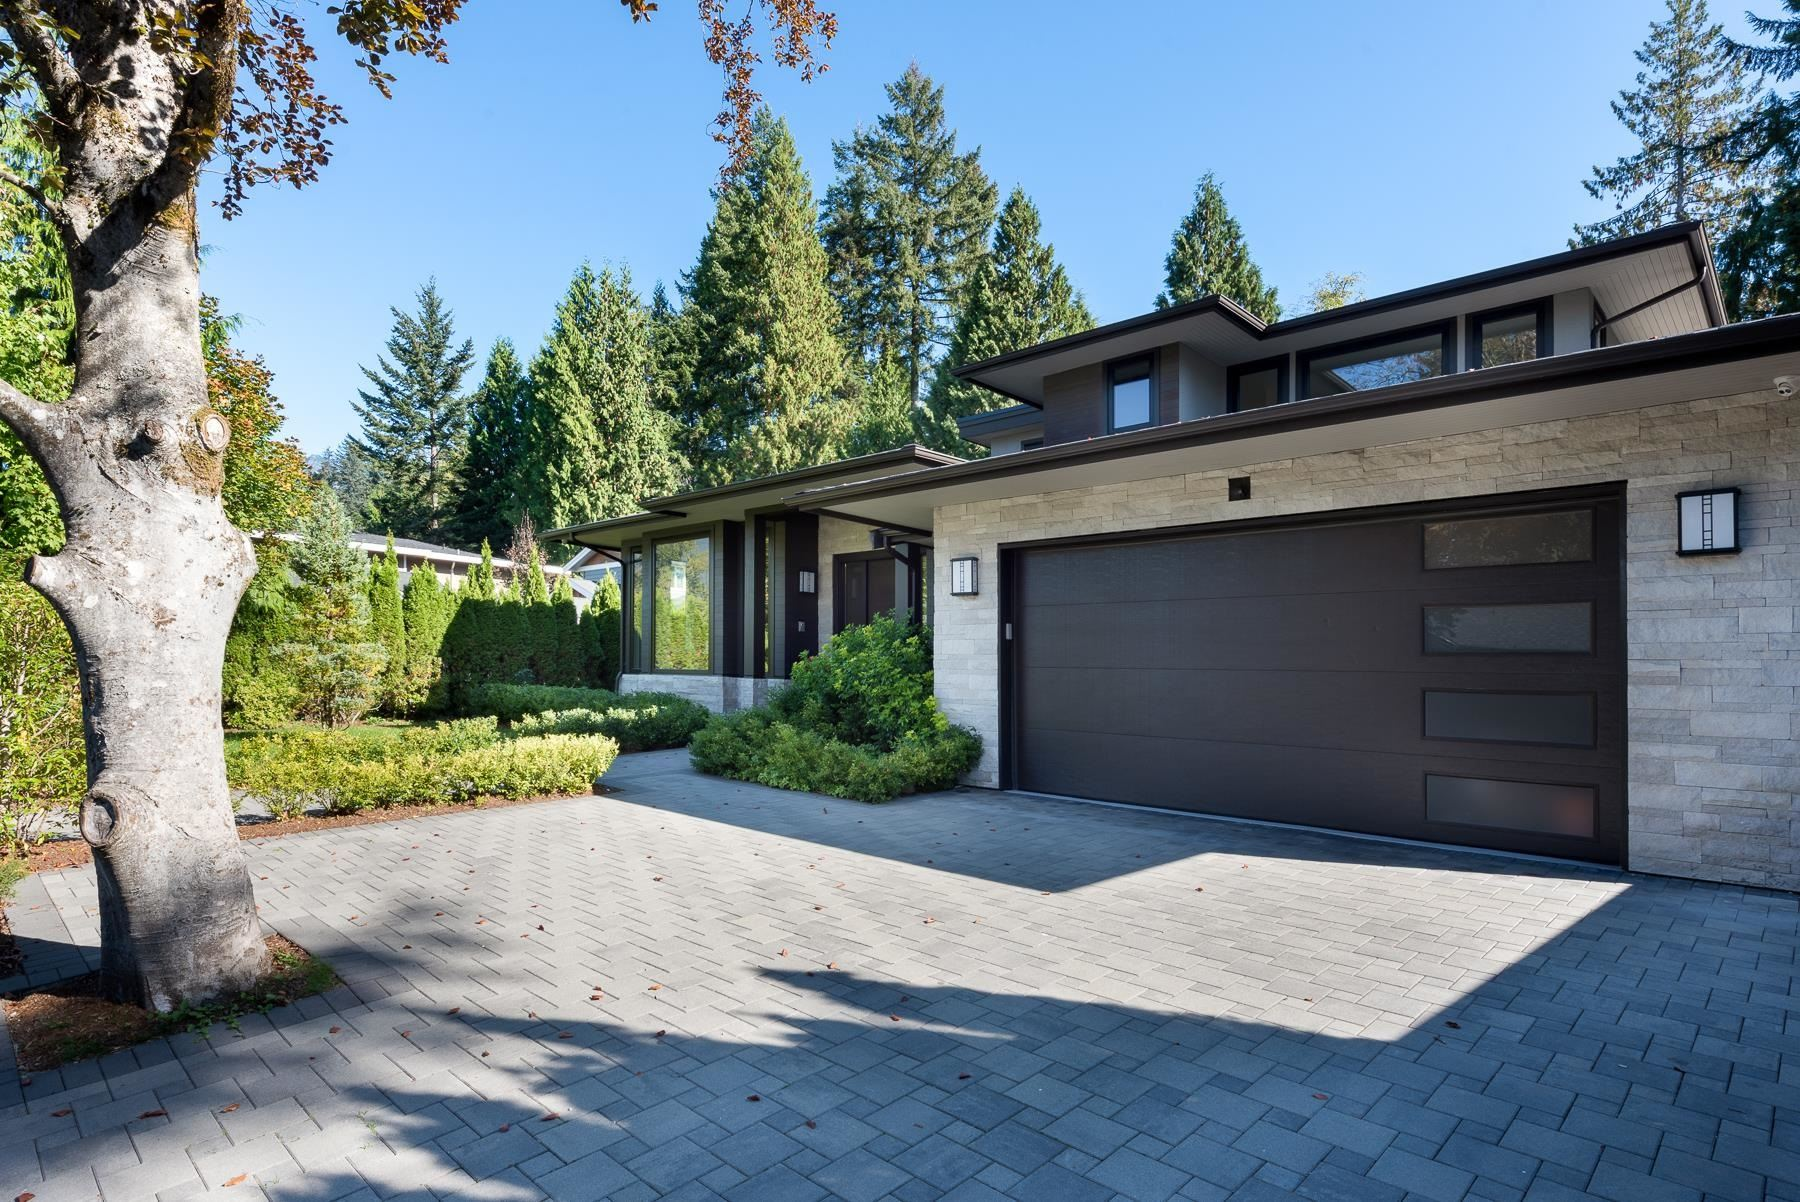 Photo of 3850 HILLCREST AVENUE, North Vancouver, BC V7R 4B6 (MLS # R2621492)